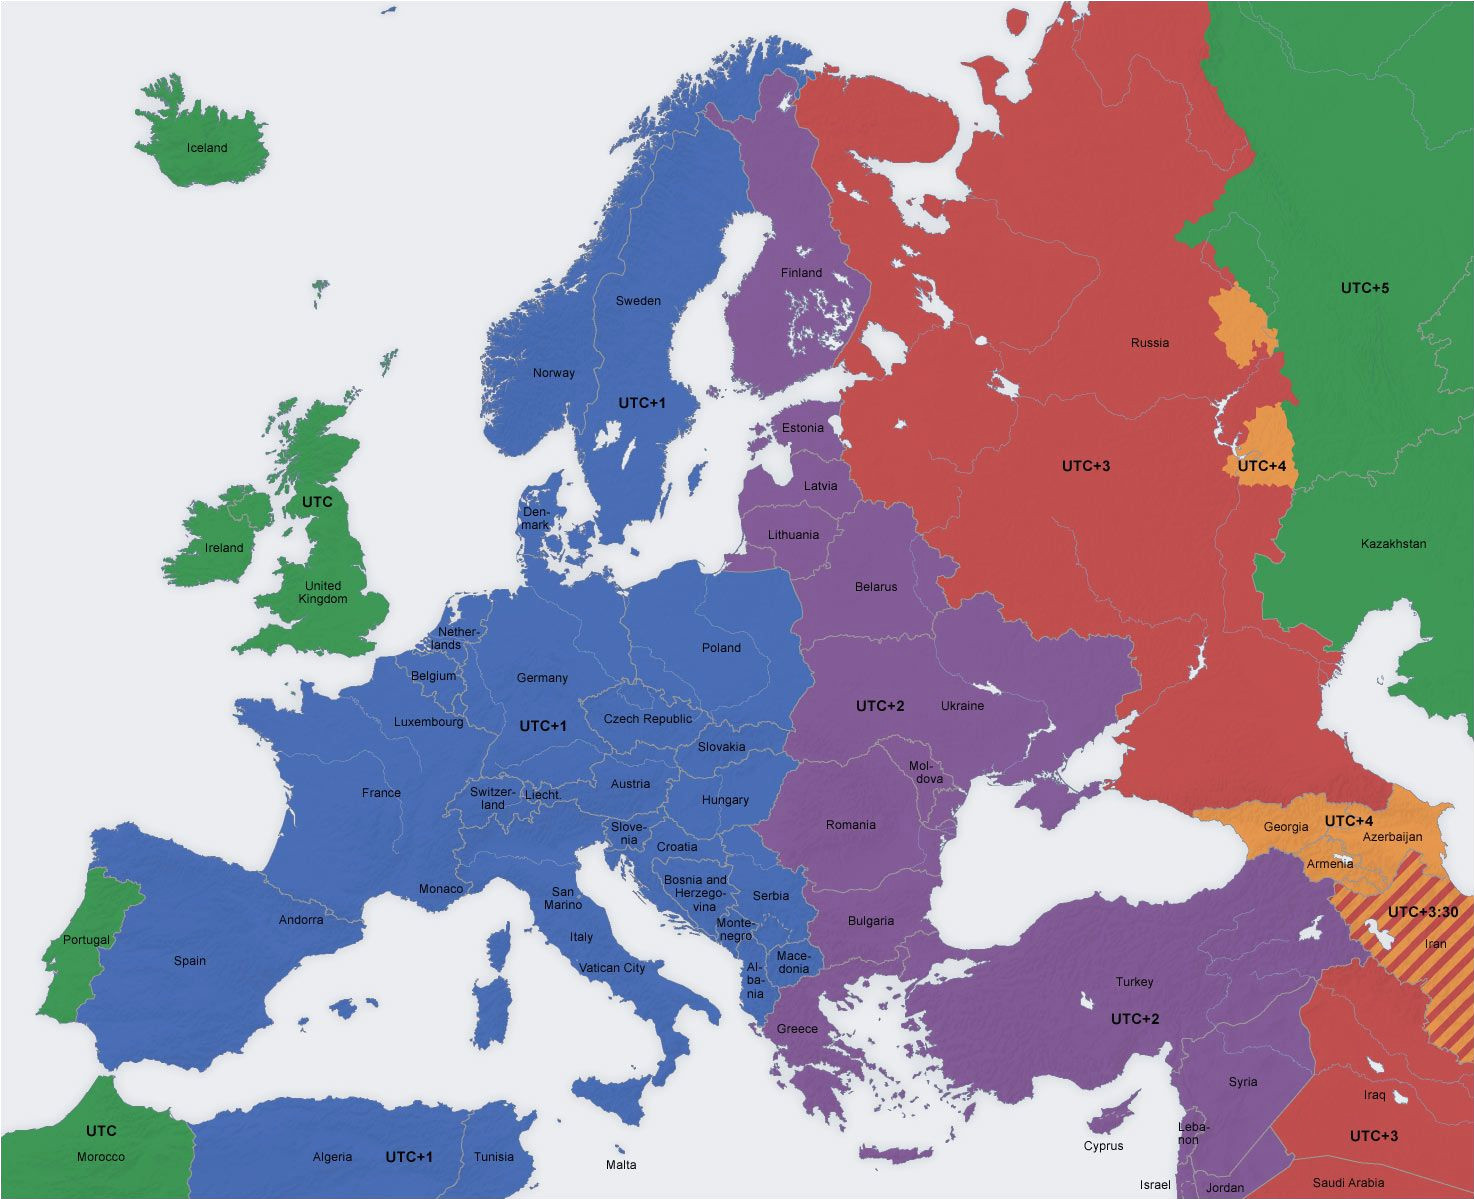 Time Zones In Europe Map Europe Map Time Zones Utc Utc Wet Western European Time